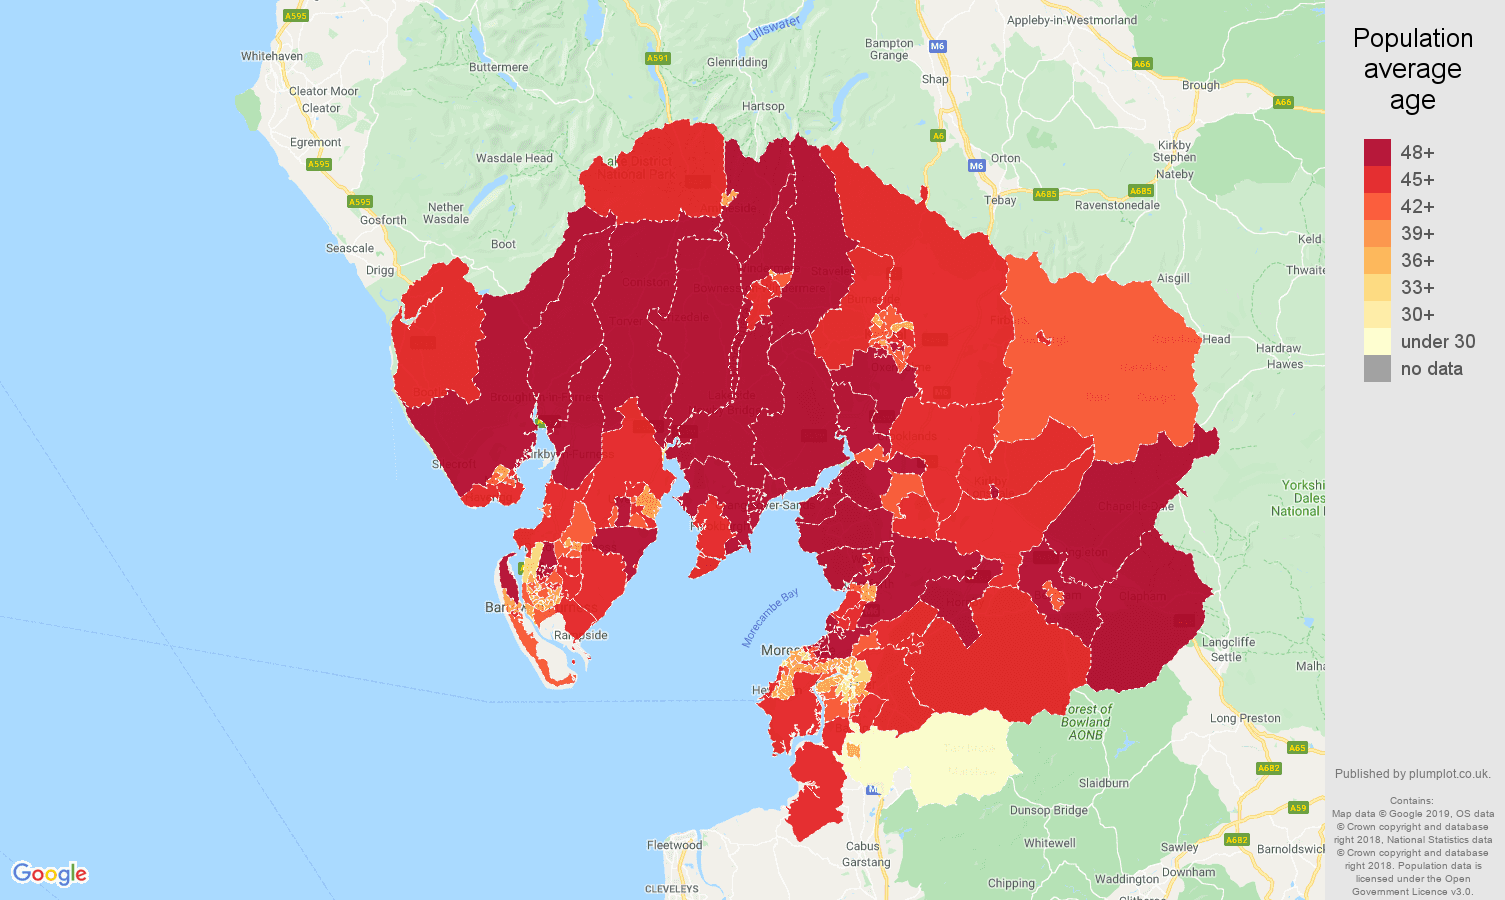 Lancaster population average age map